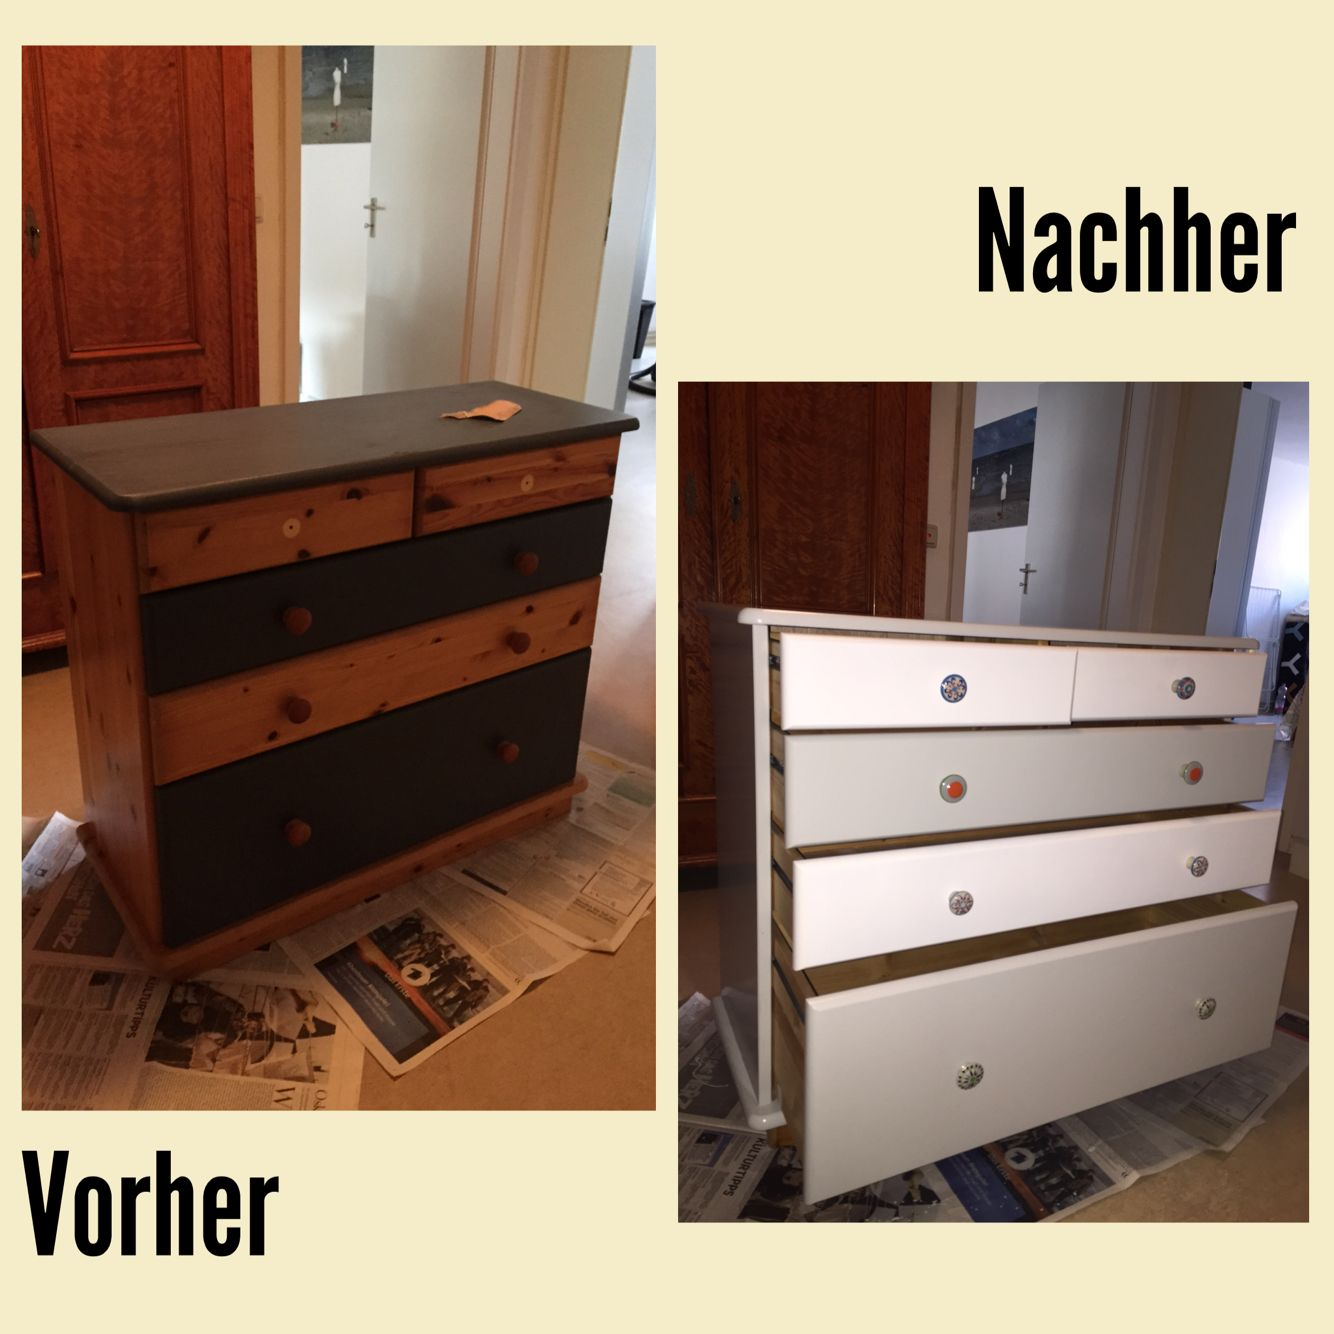 neu lackierte kommode decoration diy pinterest lackieren und neuer. Black Bedroom Furniture Sets. Home Design Ideas